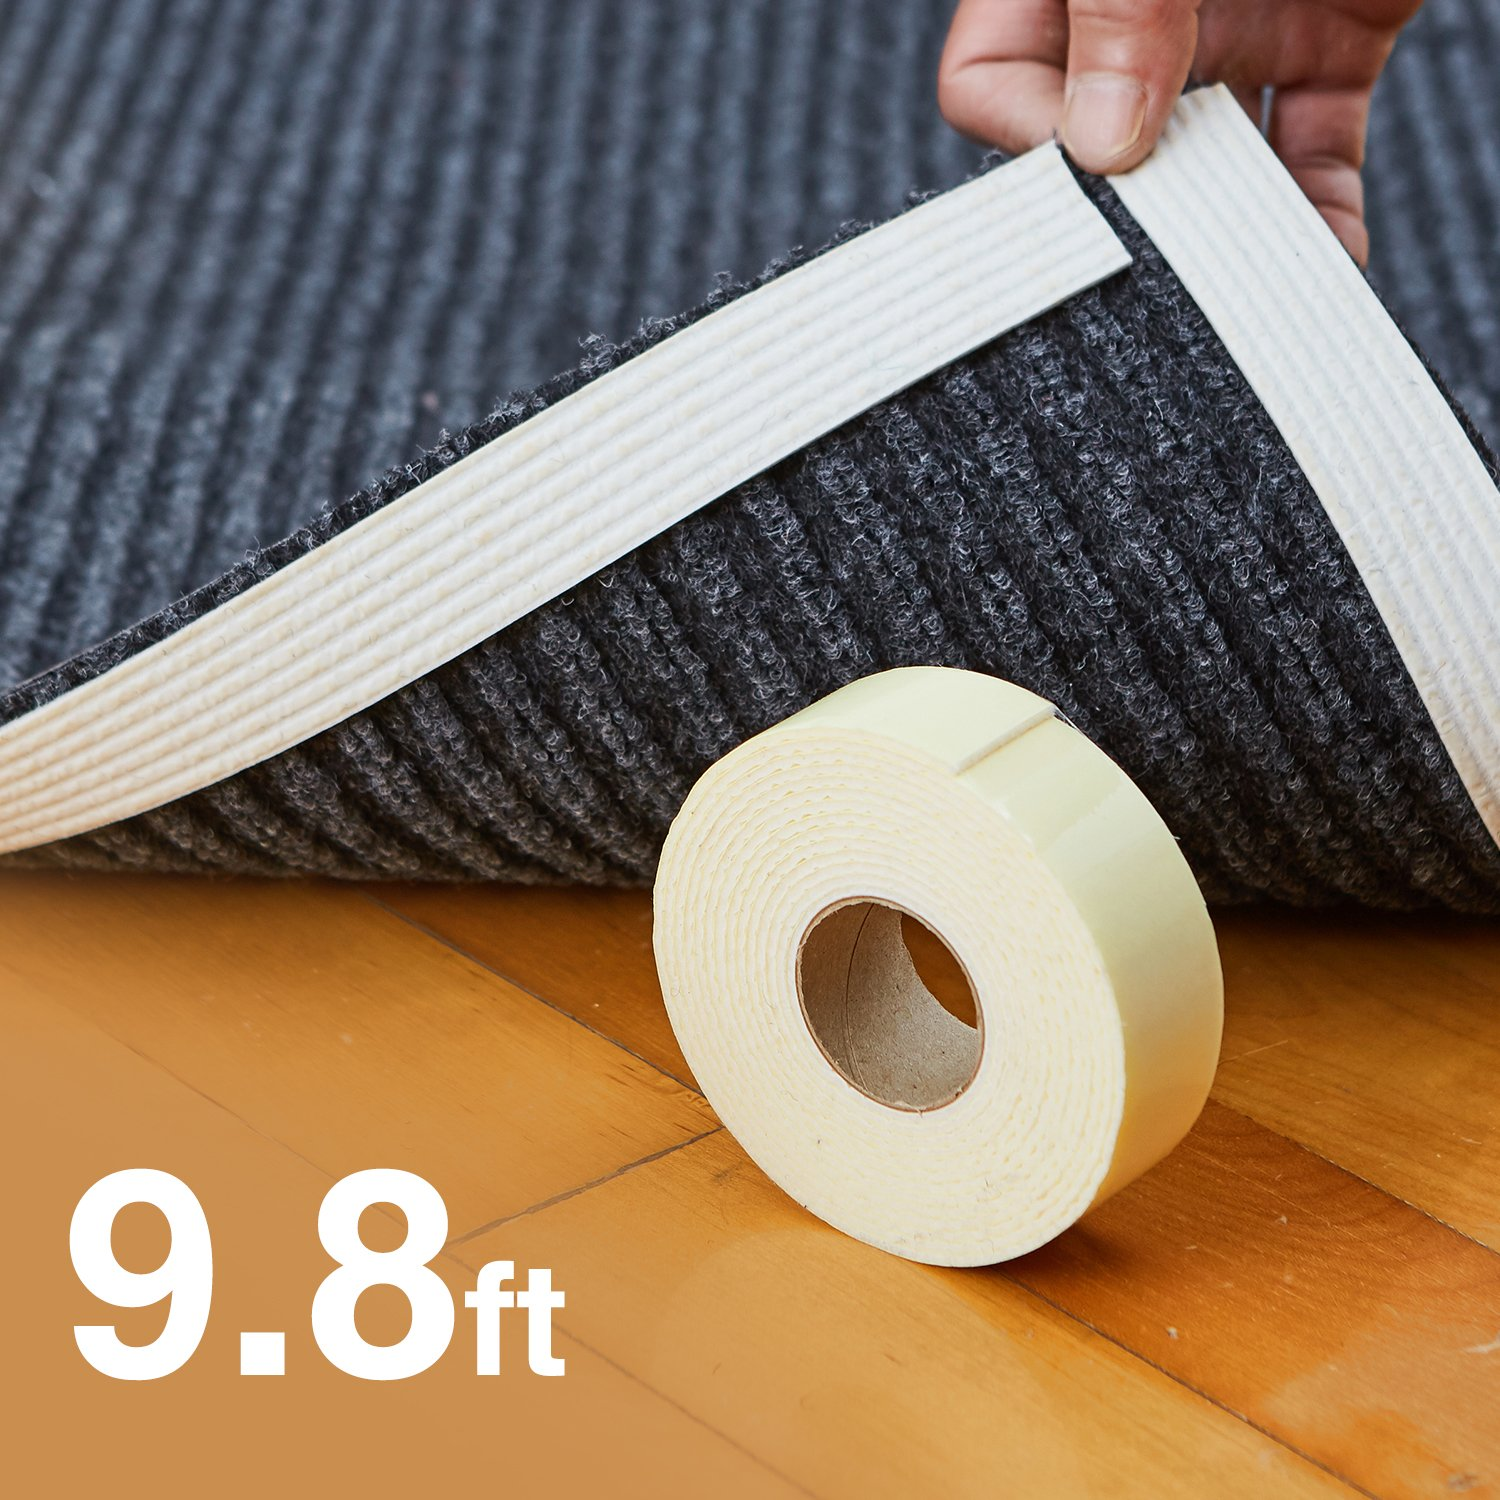 "Rug Gripper, Best Non-Slip Washable Carpet Tape ""Vacuum Tech"" -New Materials to Anti Curling Rug Grippers : Keep Place and Make Corner Flat and Easily Peel Off When Need. Reusable Carpet Gripper by Home Techpro"